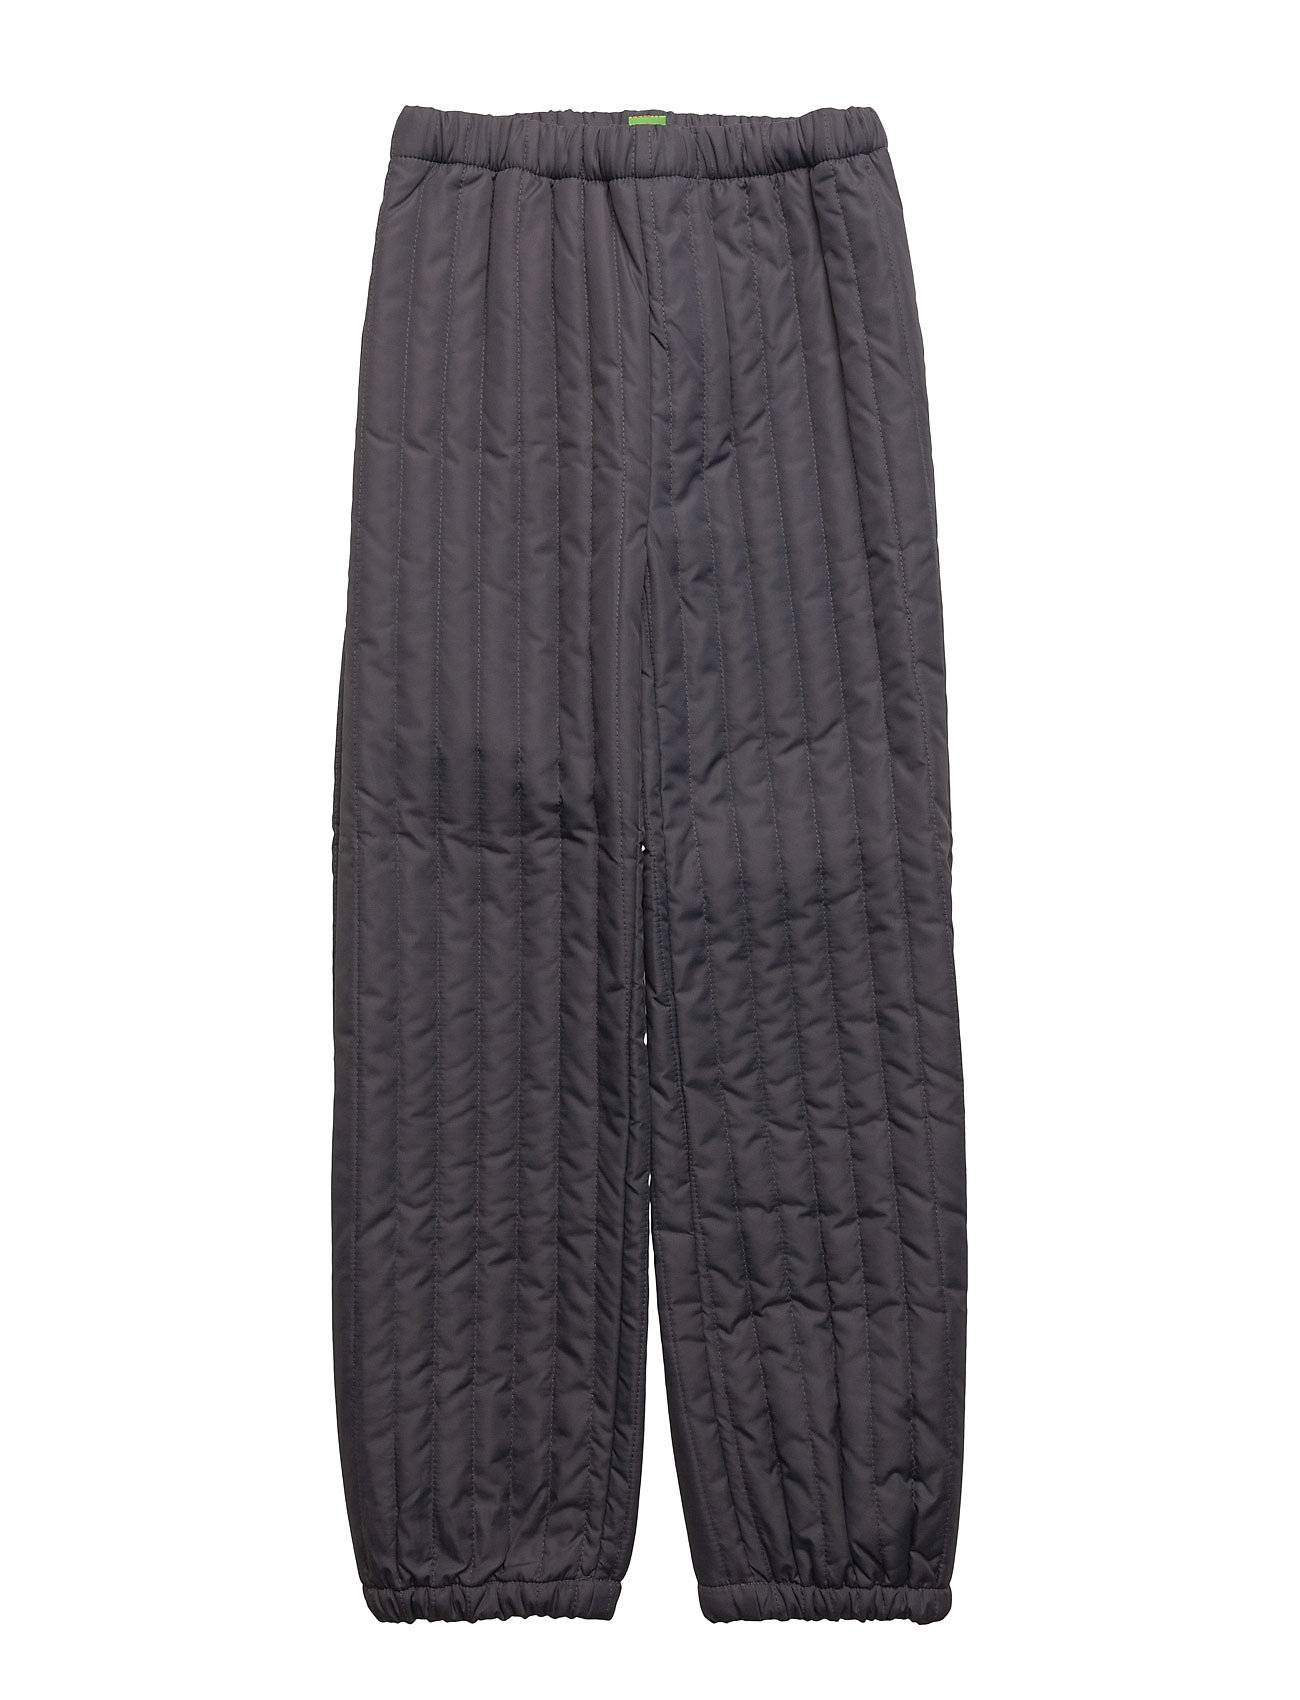 CeLaVi Thermal Quilt Pants -Solid